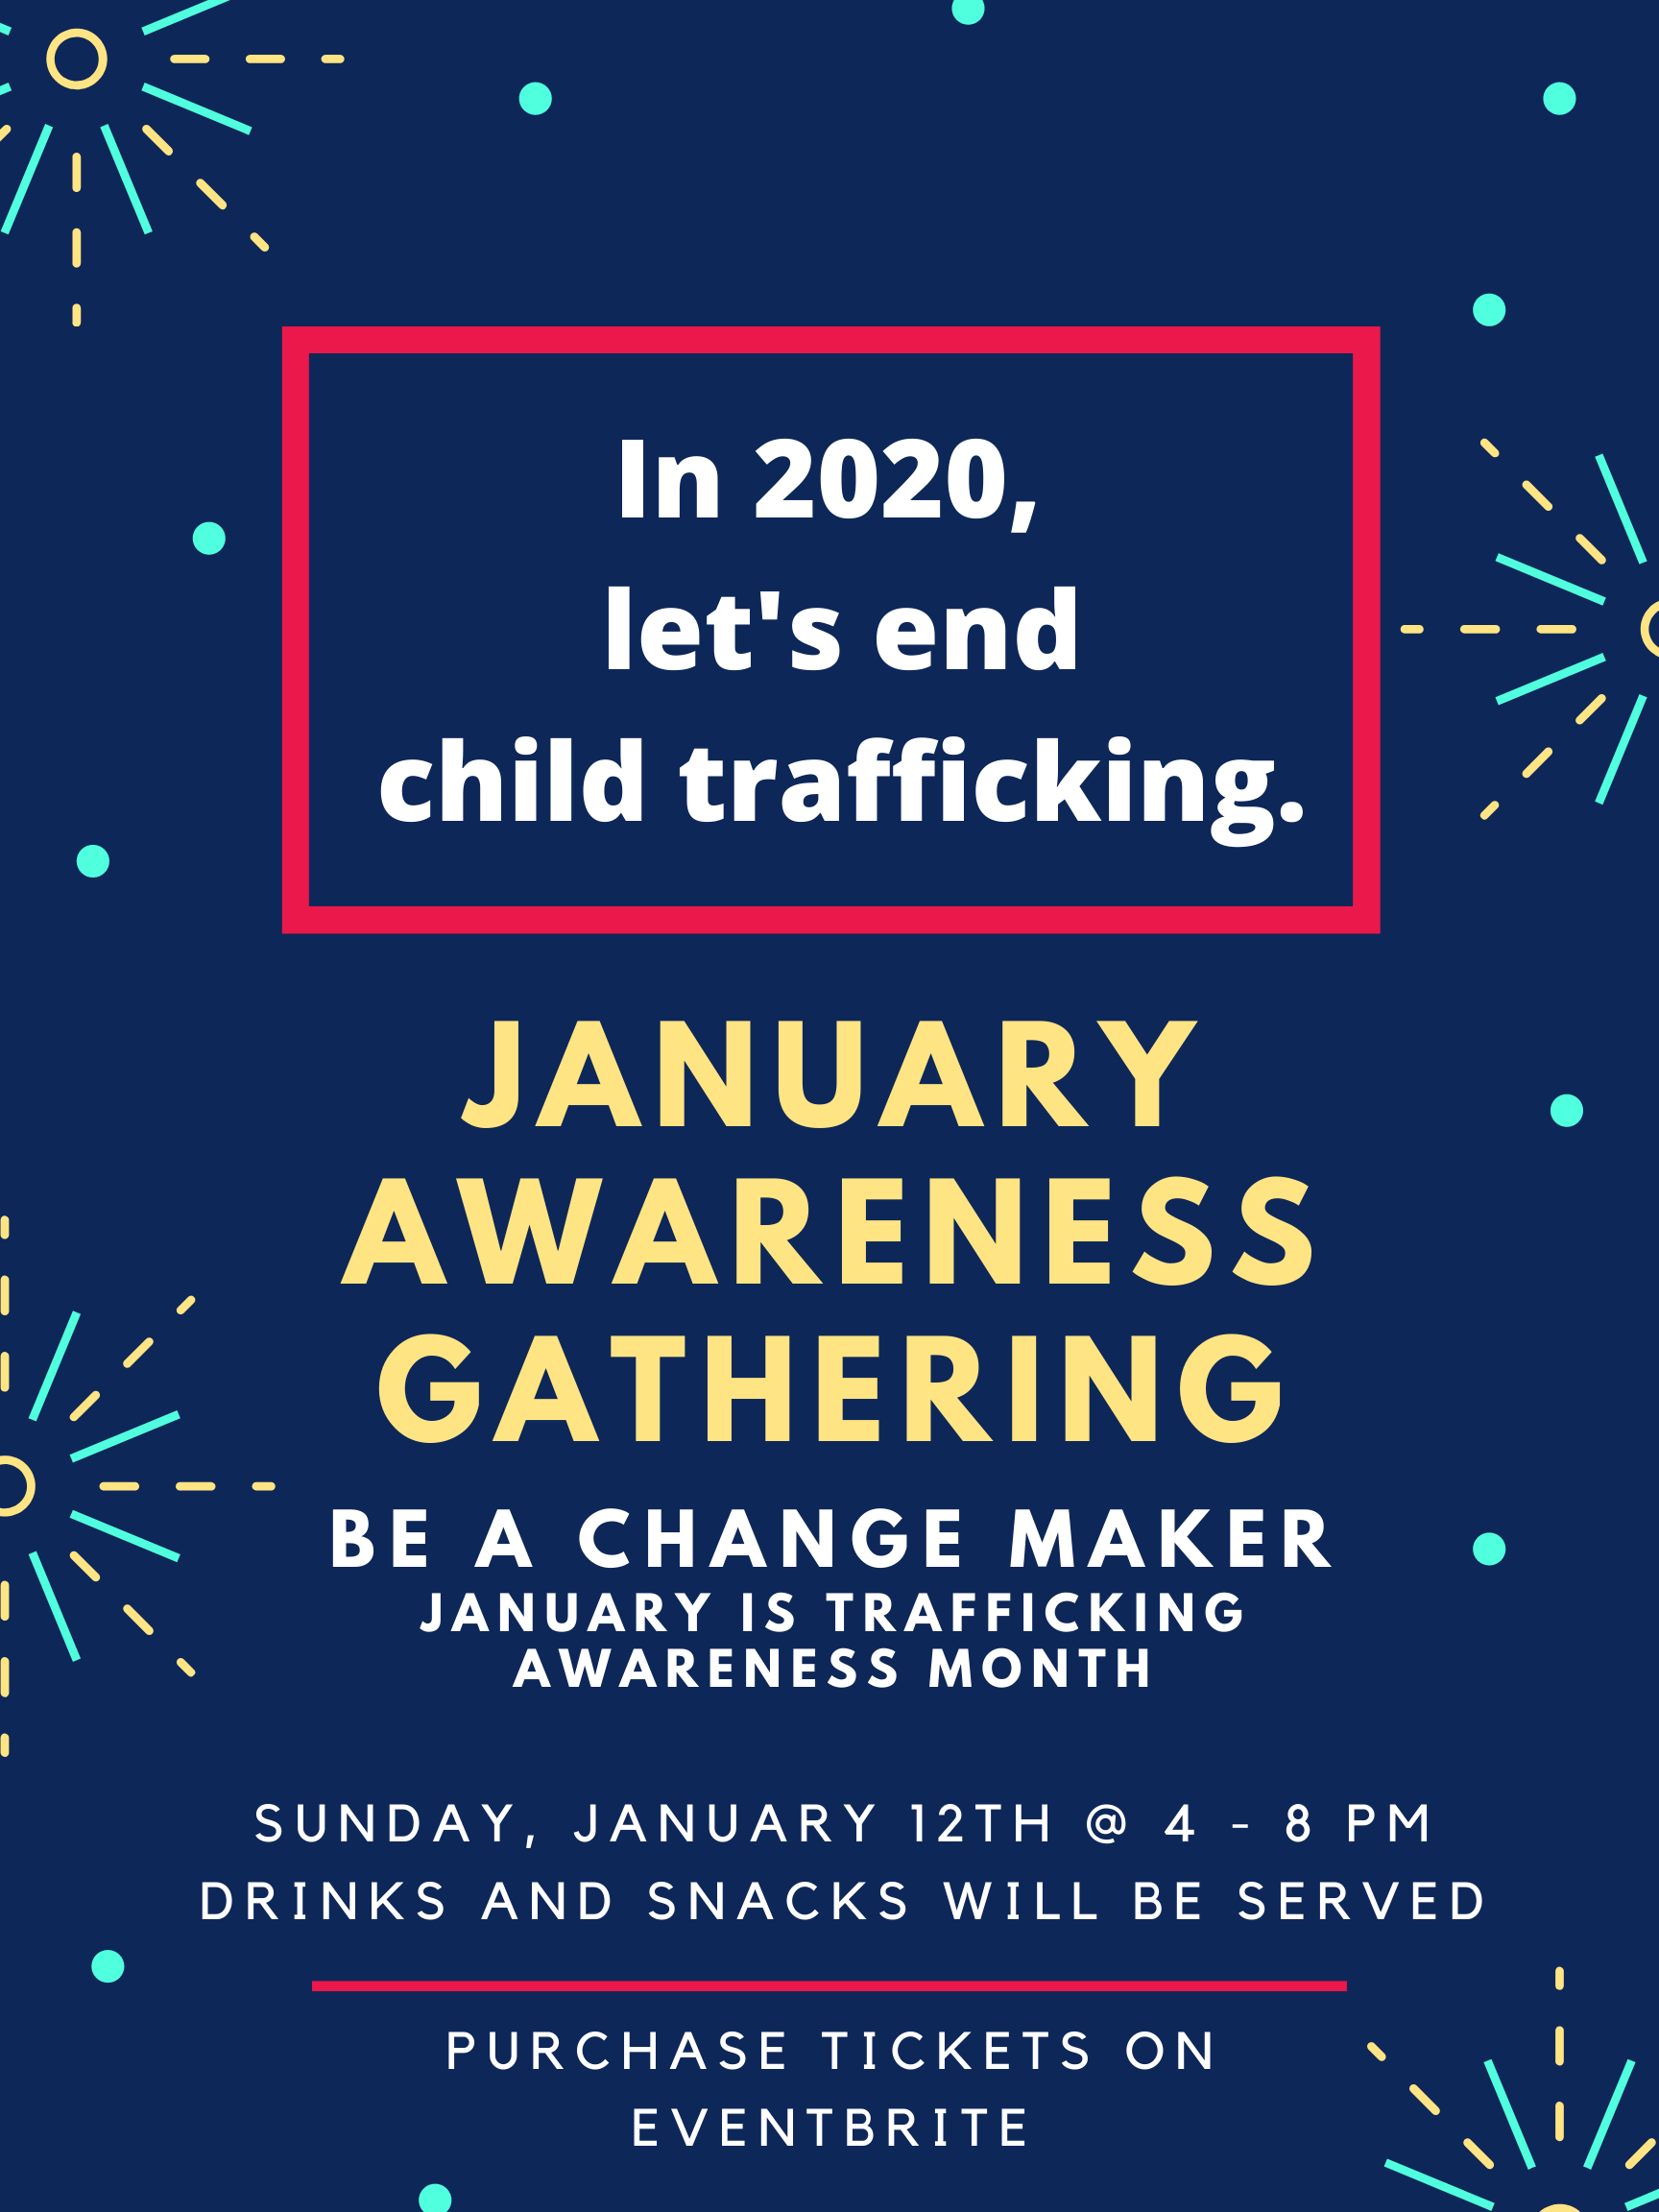 January 2020 Awareness Gathering